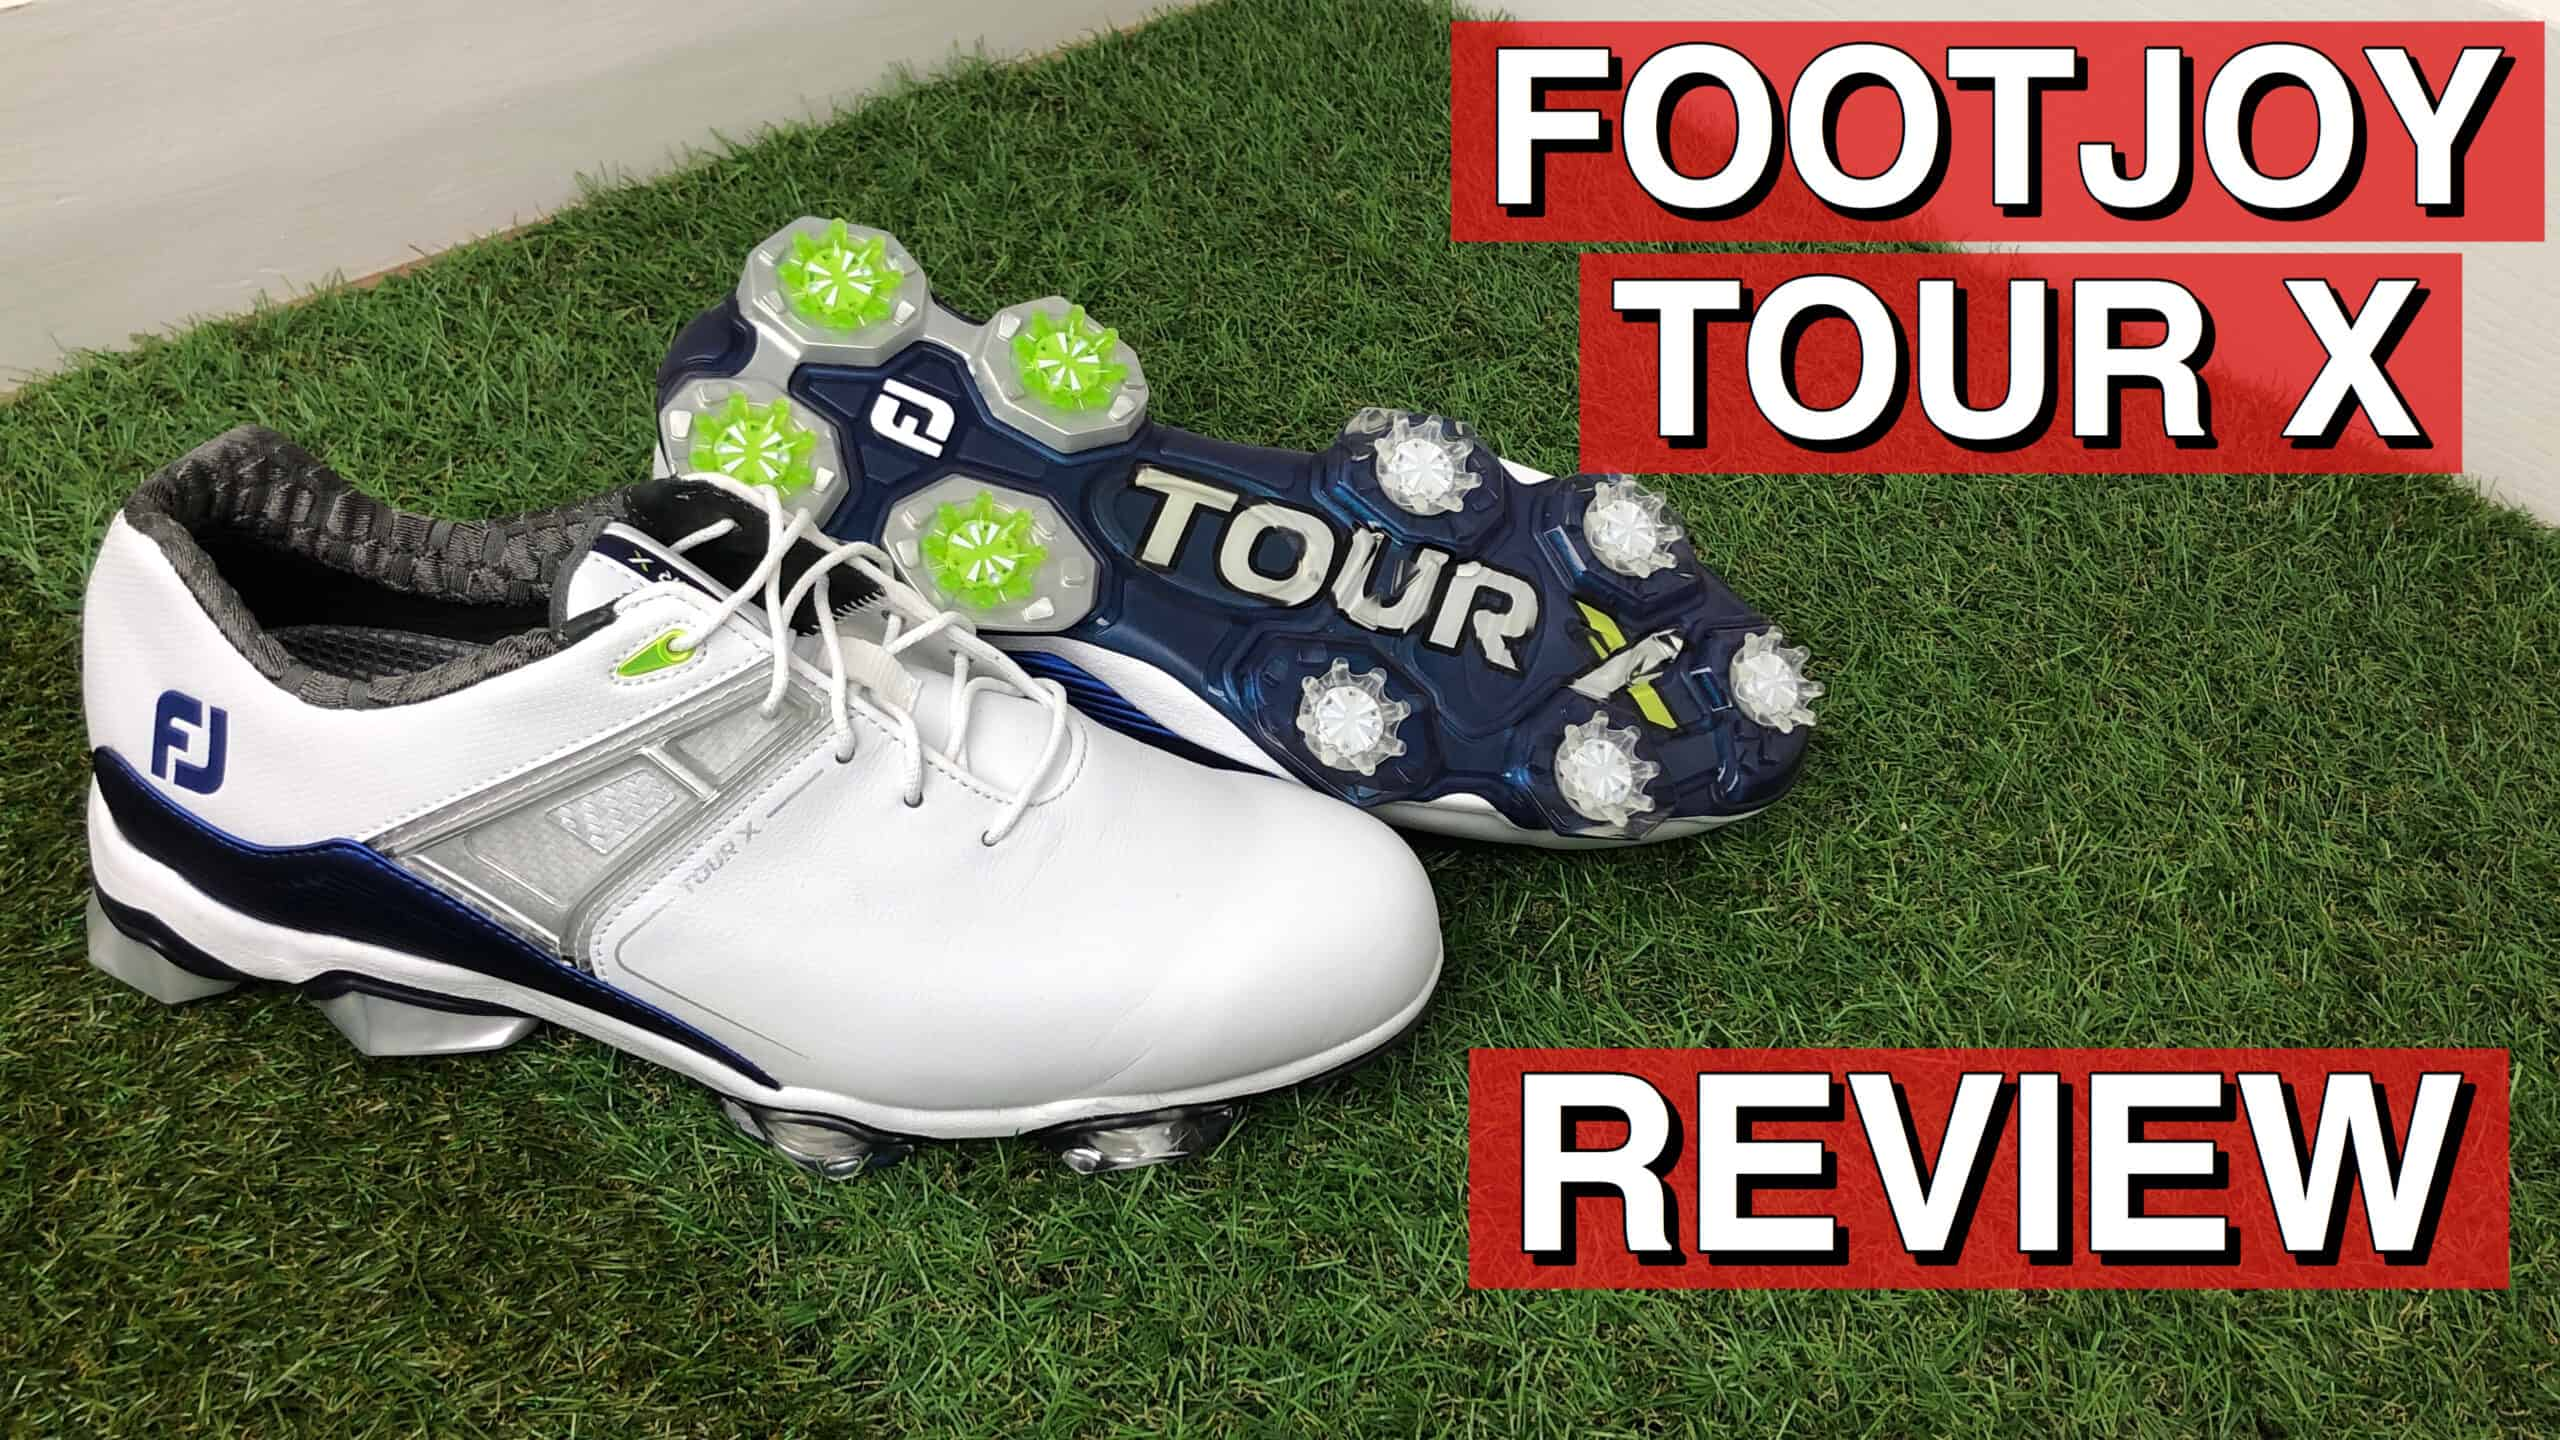 Footjoy Tour X Golf Shoes Review